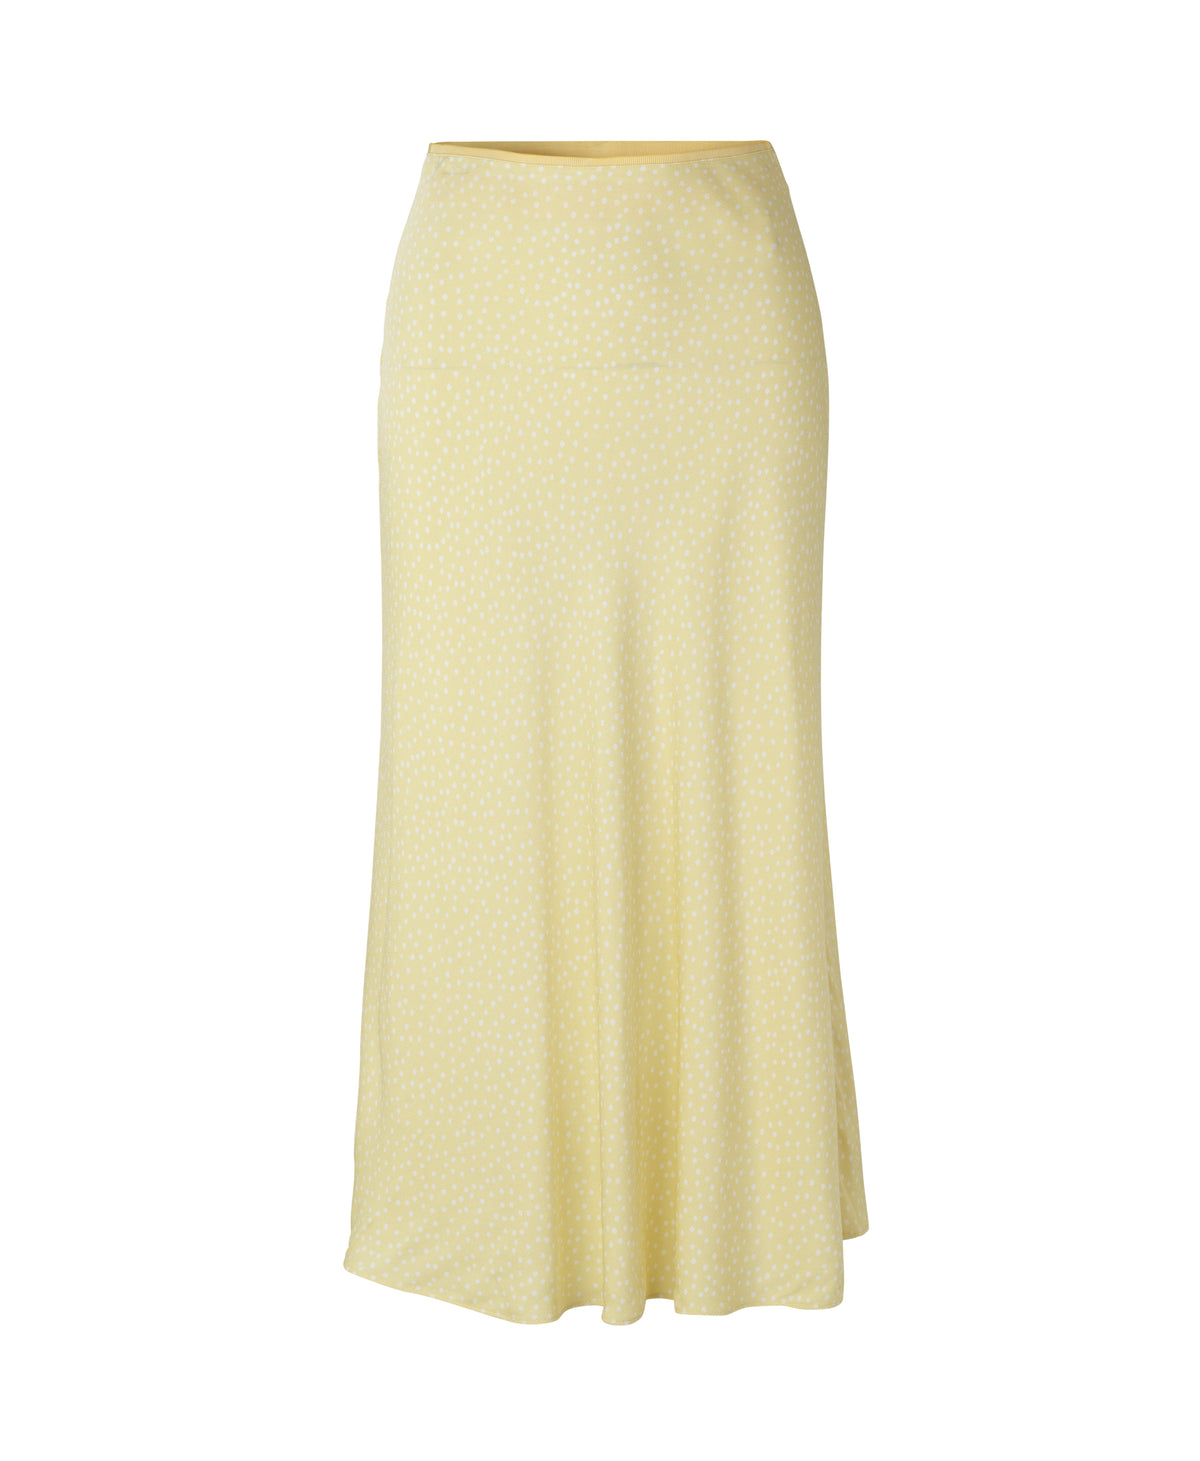 Alsop Skirt - Yellow Summer Drops